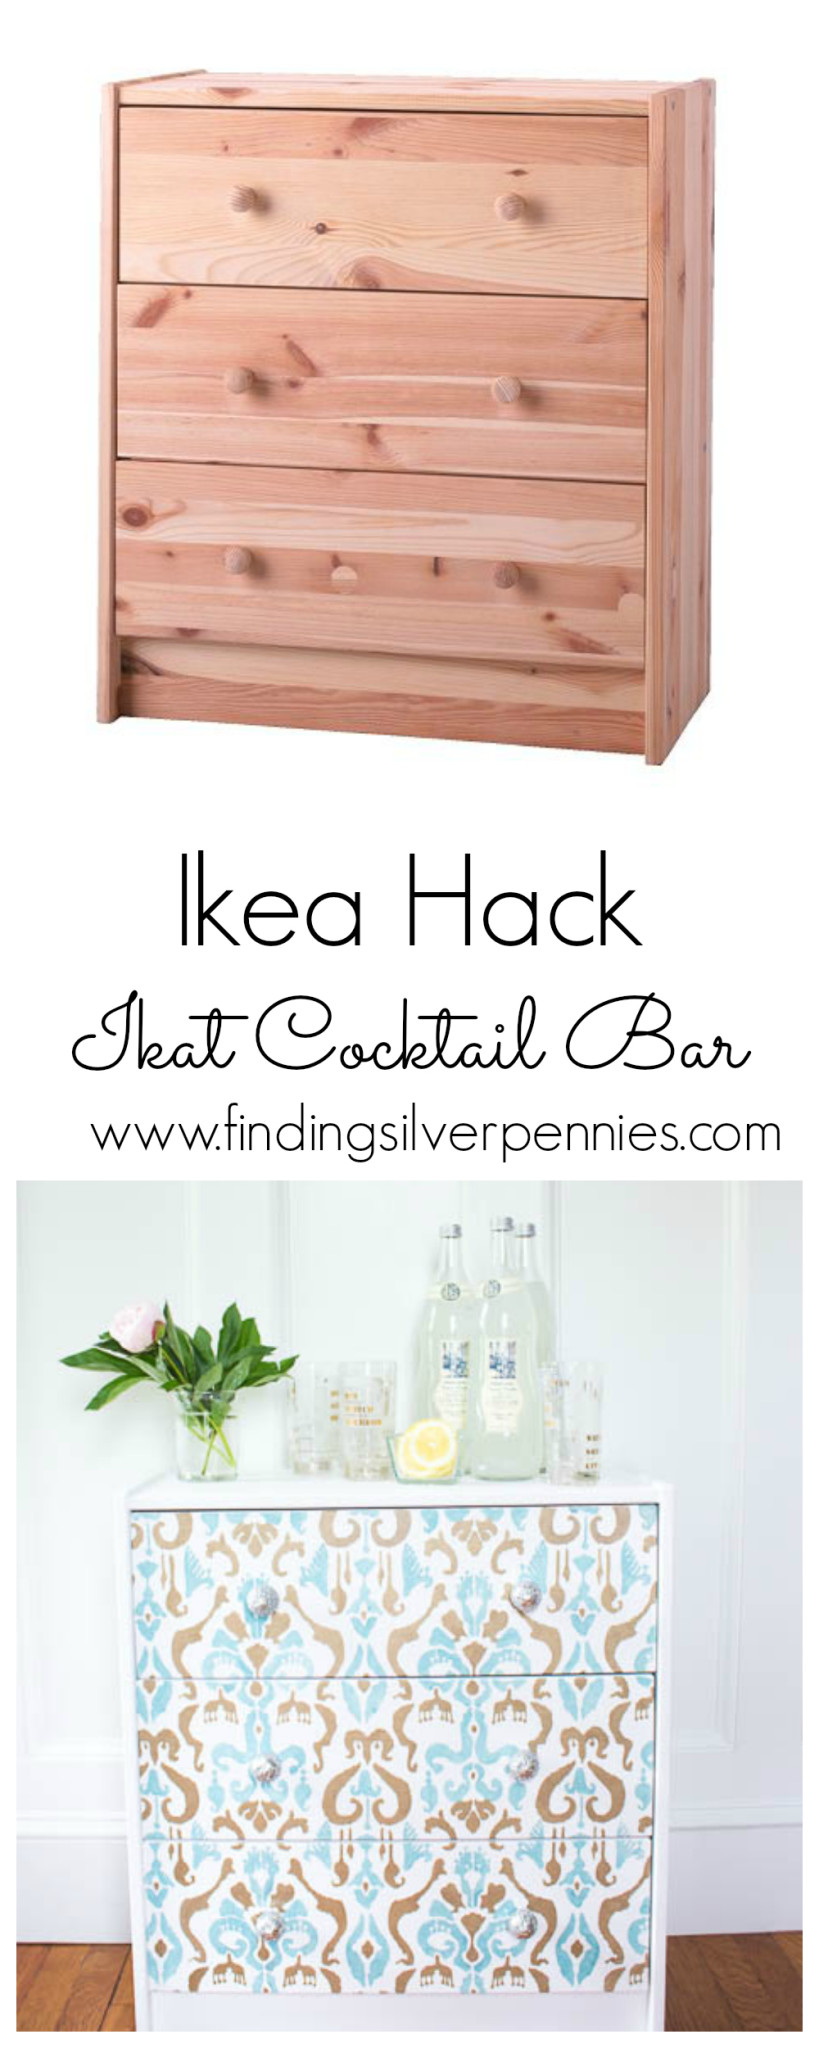 Ikea Hack Ikat Cocktail Bar by Finding Silver Pennies